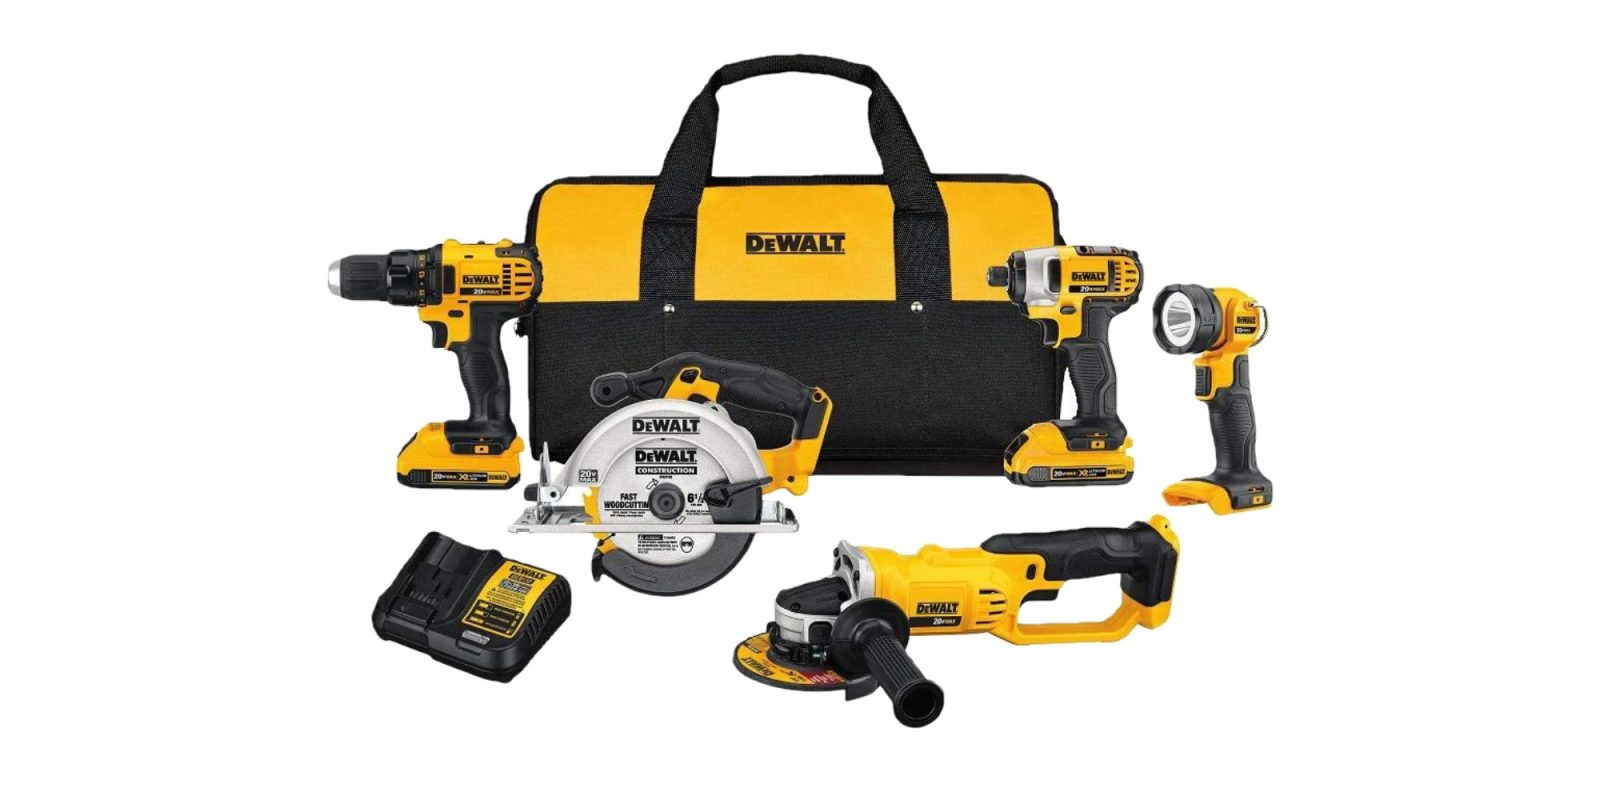 Score five DEWALT tools, two batteries, and carrying bag for $299 (Reg. $529)